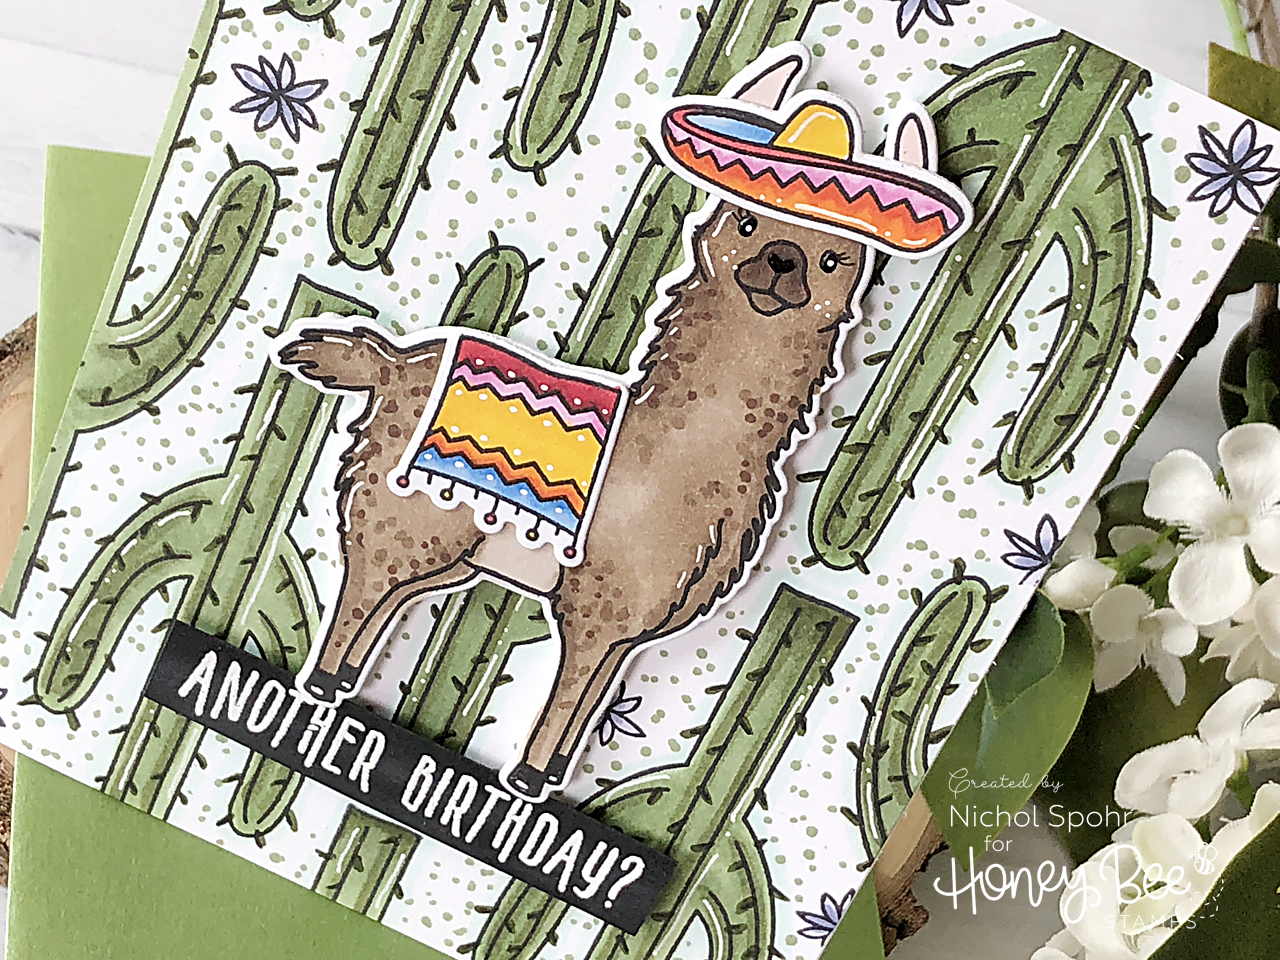 No Probllama Birthday Card with Nichol Spohr